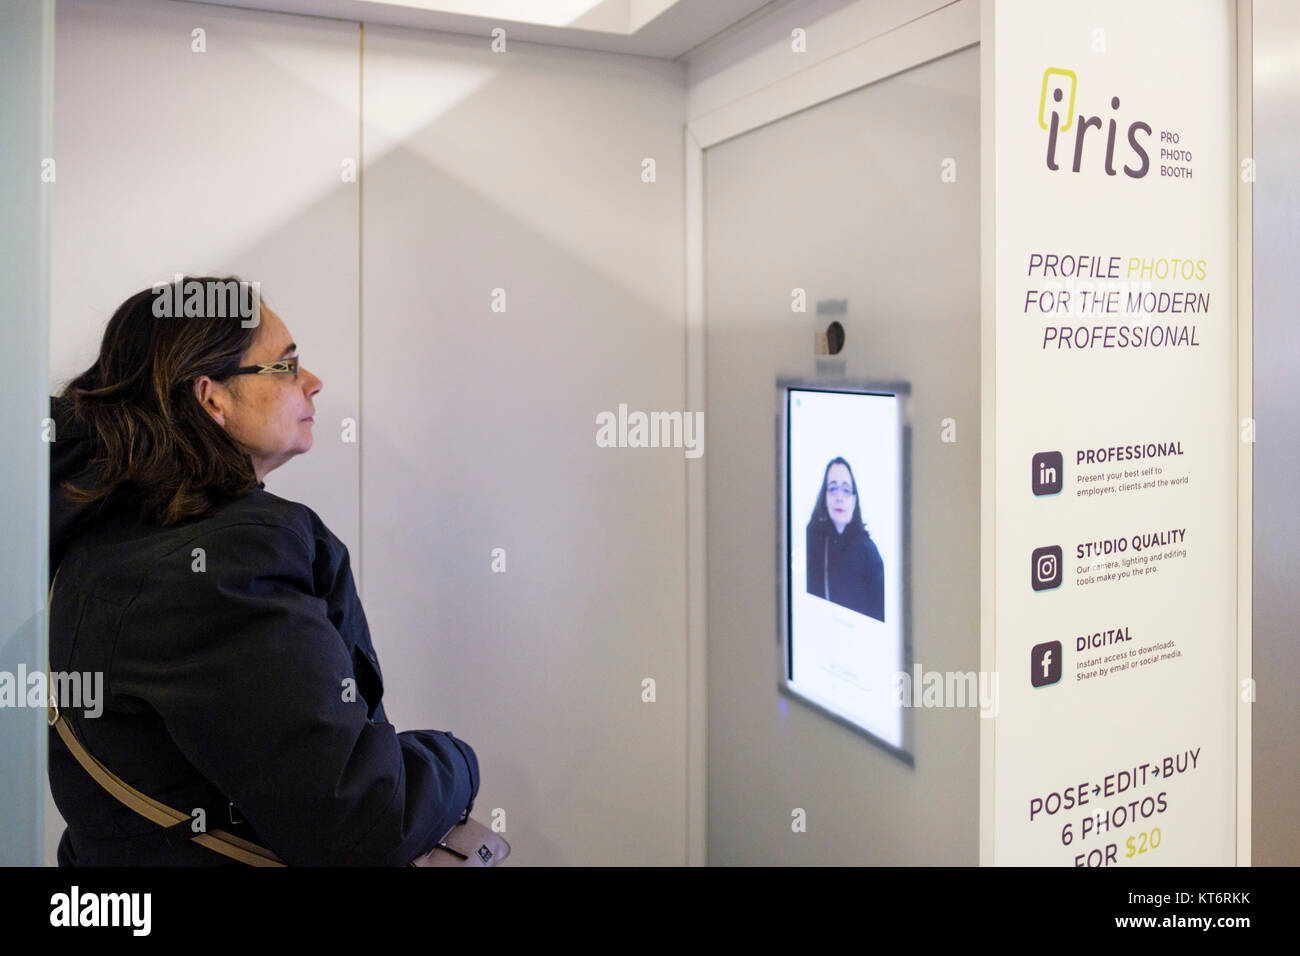 Iris Pro Photo Booth takes high-end headshots of people ordered and processed digitally, Ryerson University - Ted - Stock Image